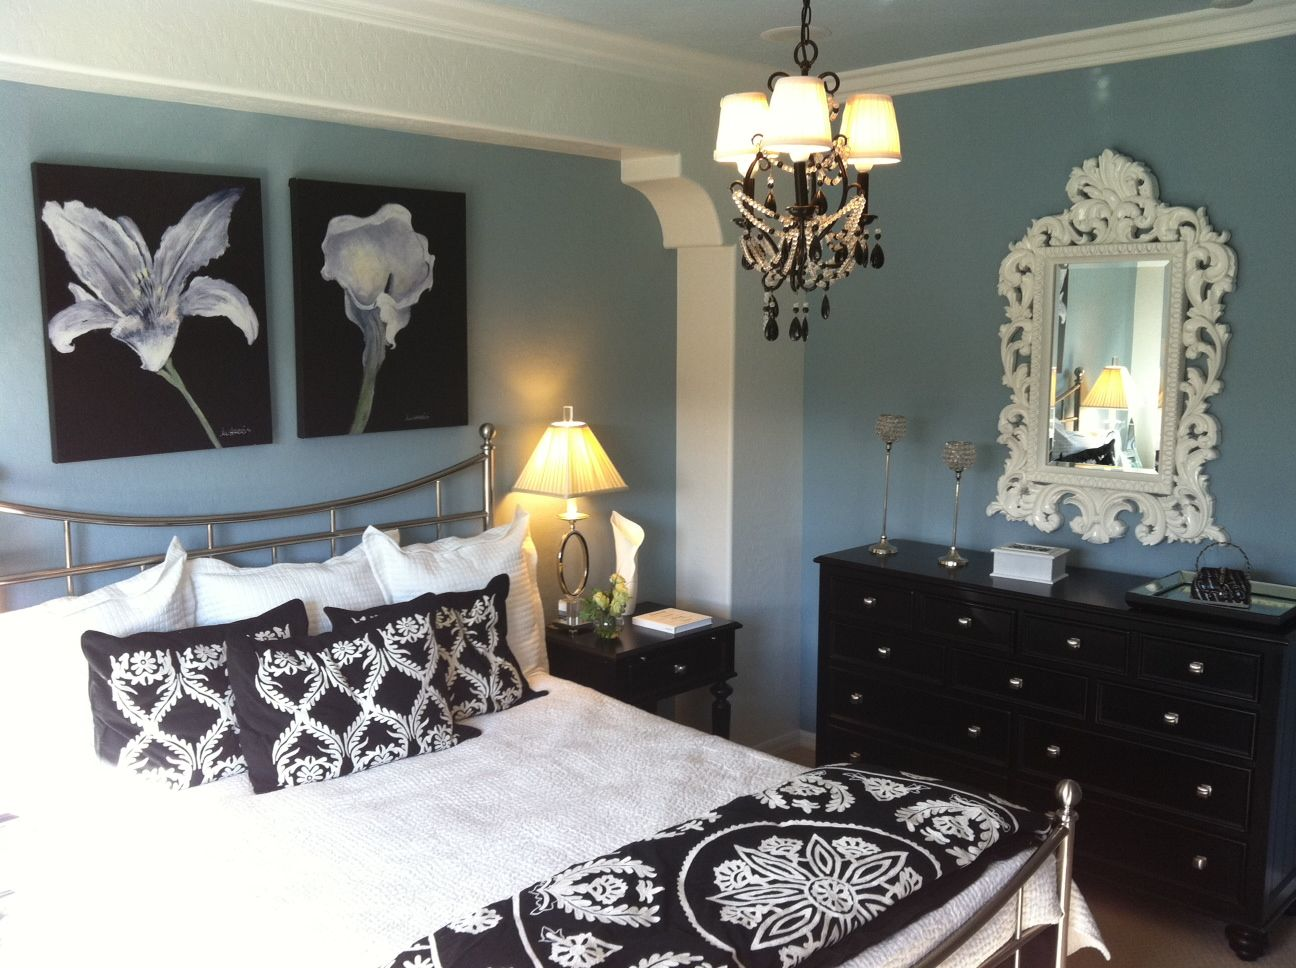 Blue black white glamorous photo from my model home tour